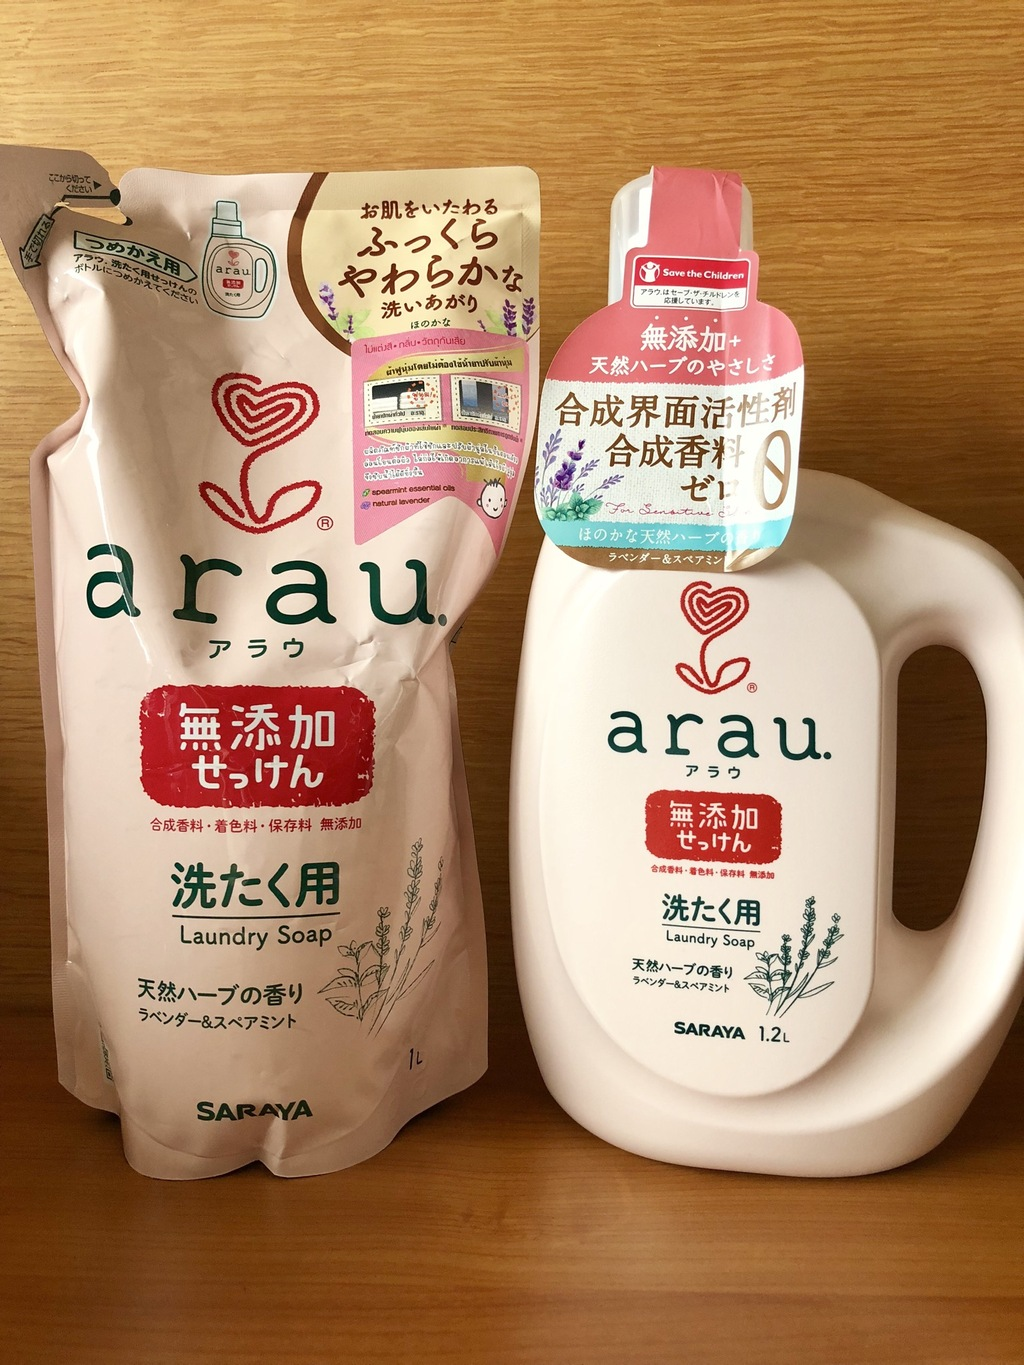 arau. laundry soap set รีวิว